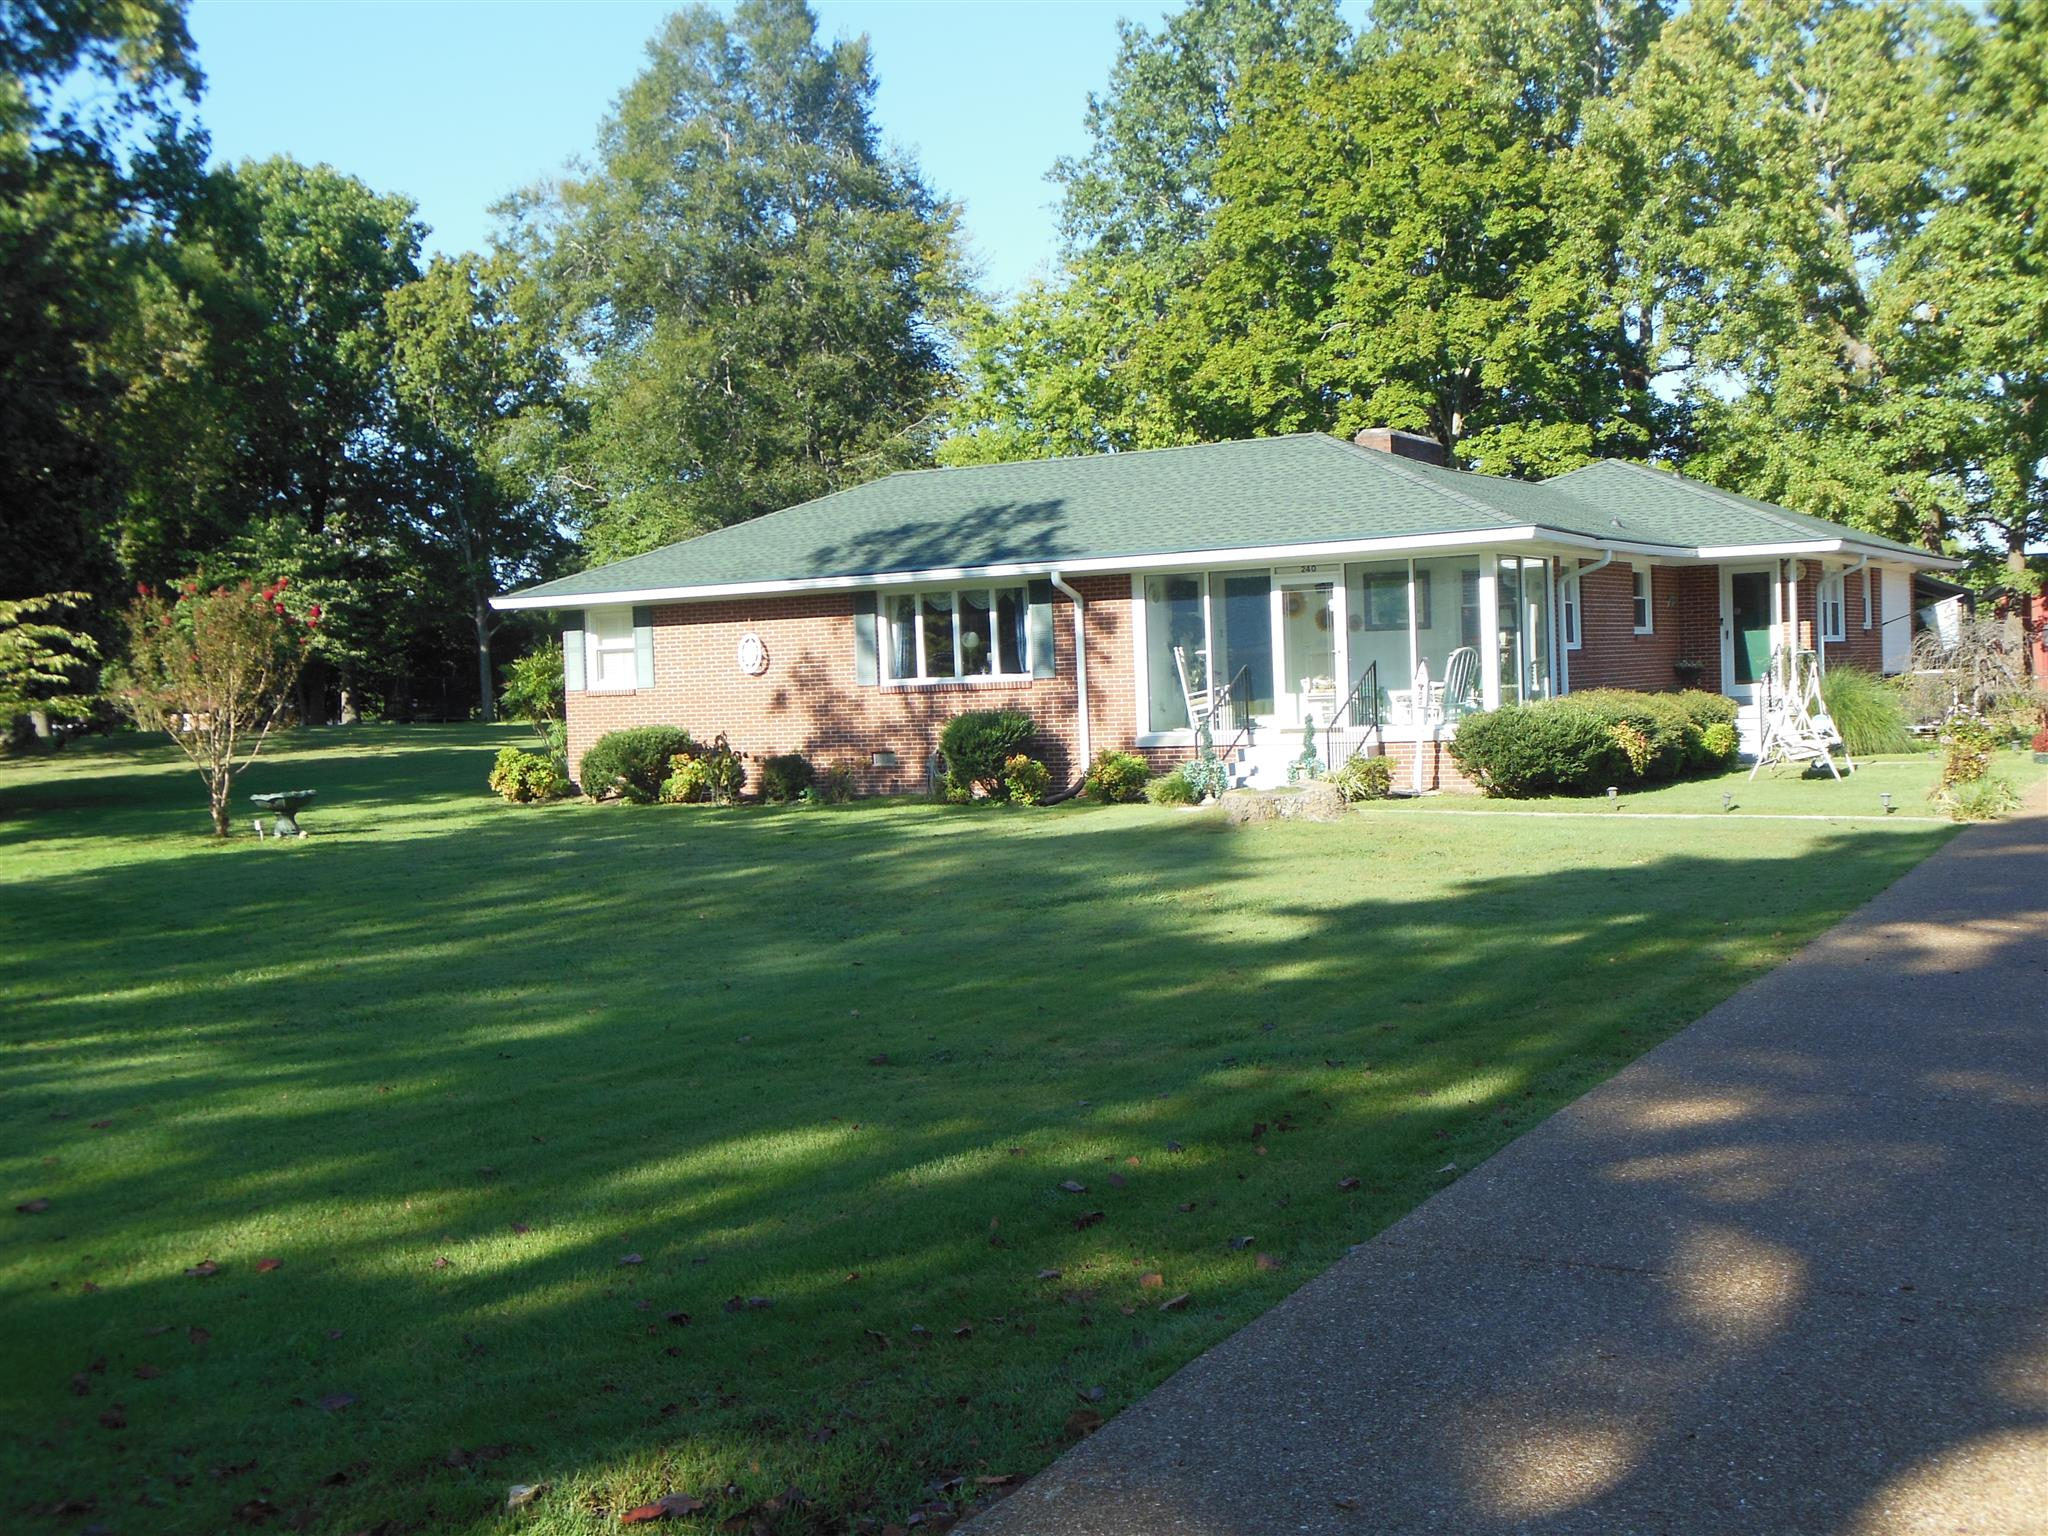 240 Joyce Ave, Lewisburg, TN 37091 - Lewisburg, TN real estate listing